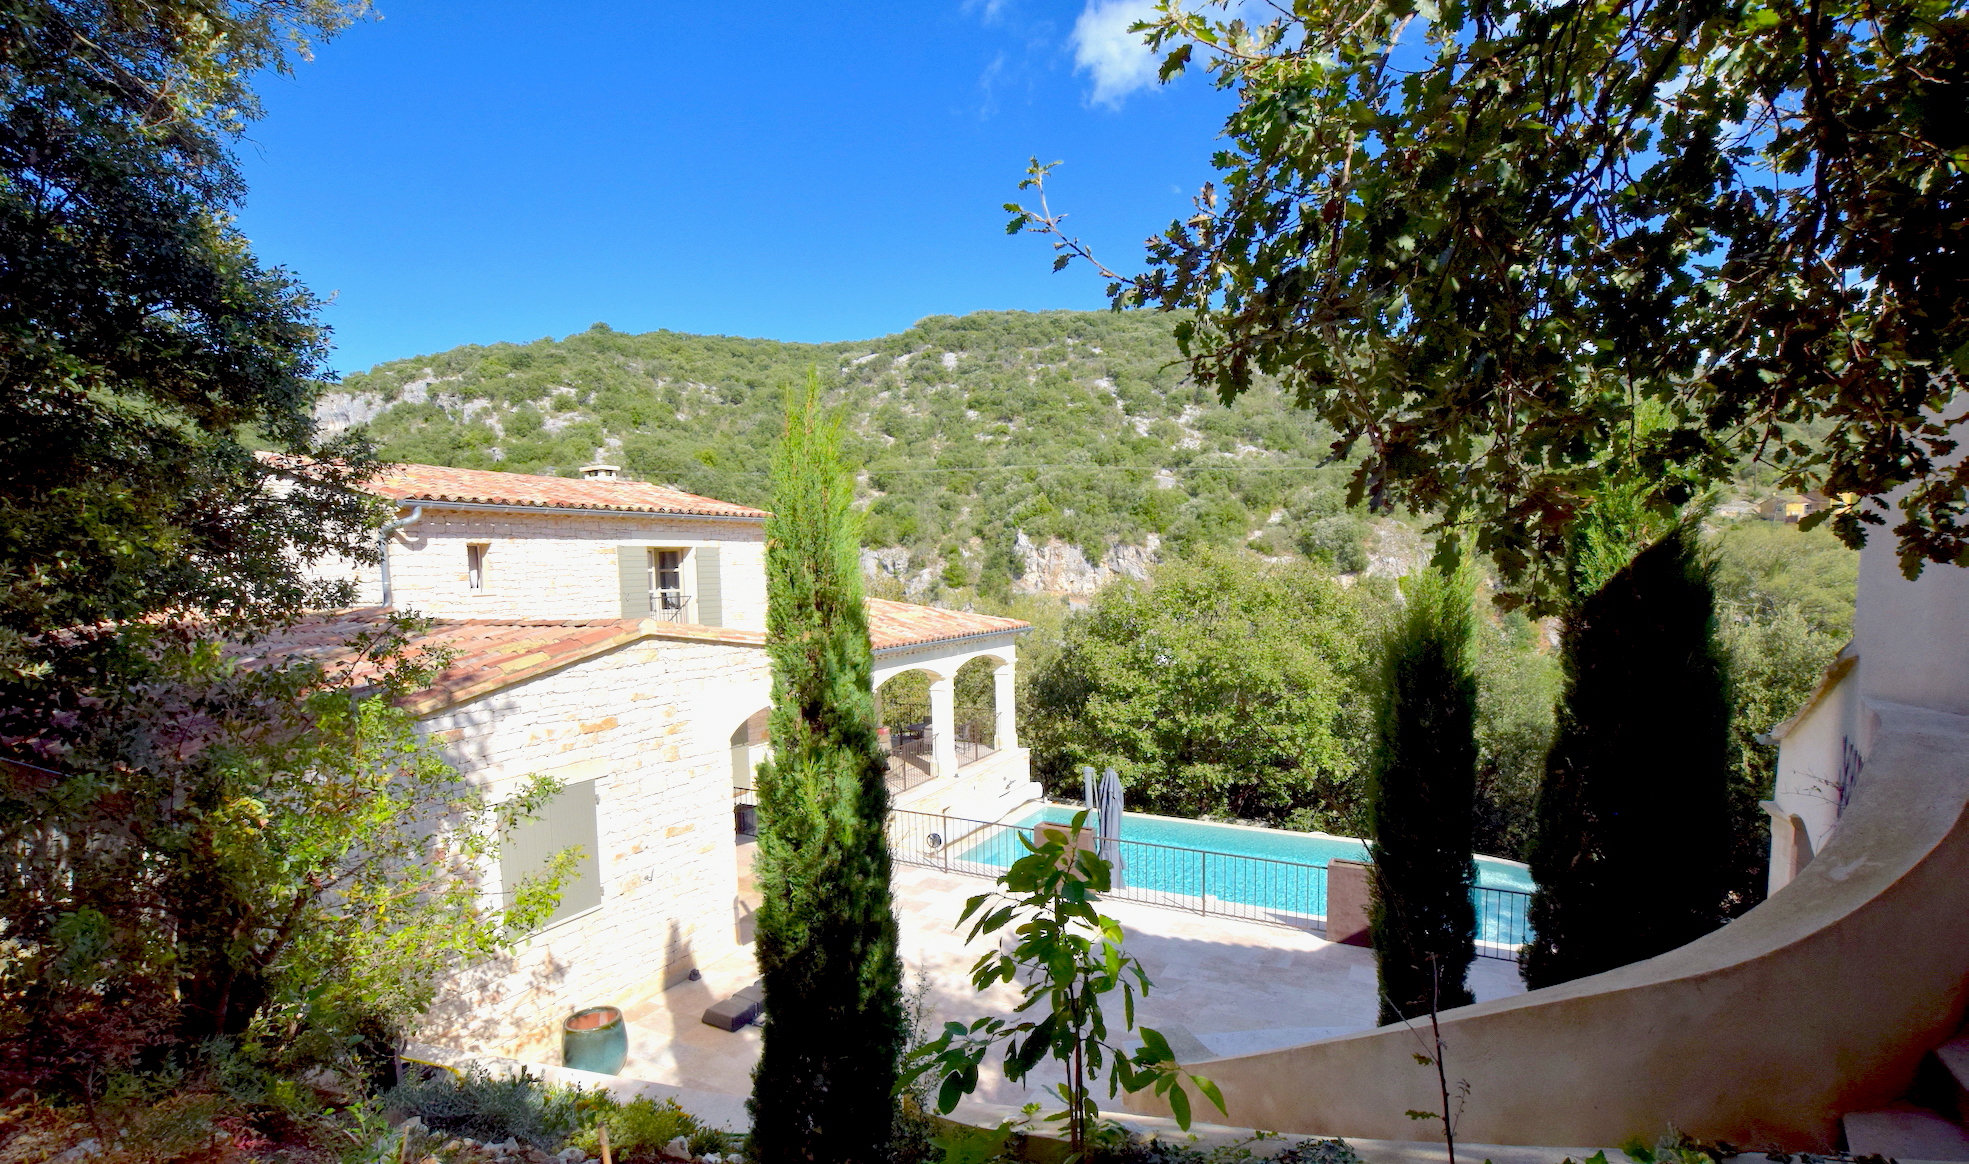 2259 : Cèze river valley, fabulous house above the River Cèze, 240m2 SH, heated pool